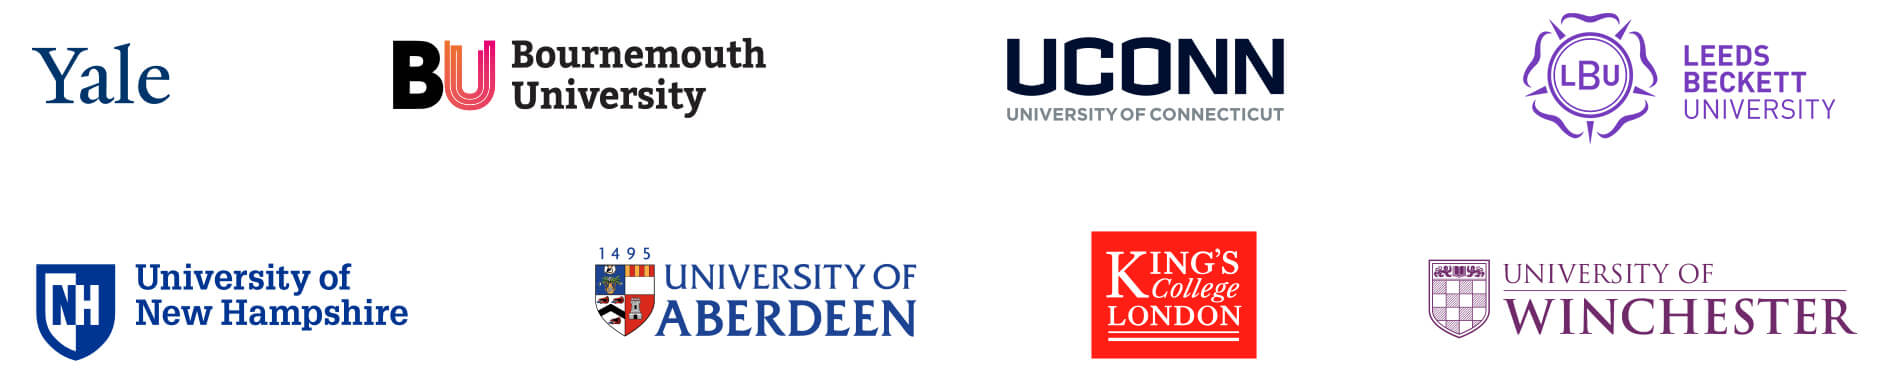 Yale, Bournemouth University, University of Connectitcut, Leeds Beckett University, University of New Hampshire, University of Aberdeen, King's College London, University of Winchester